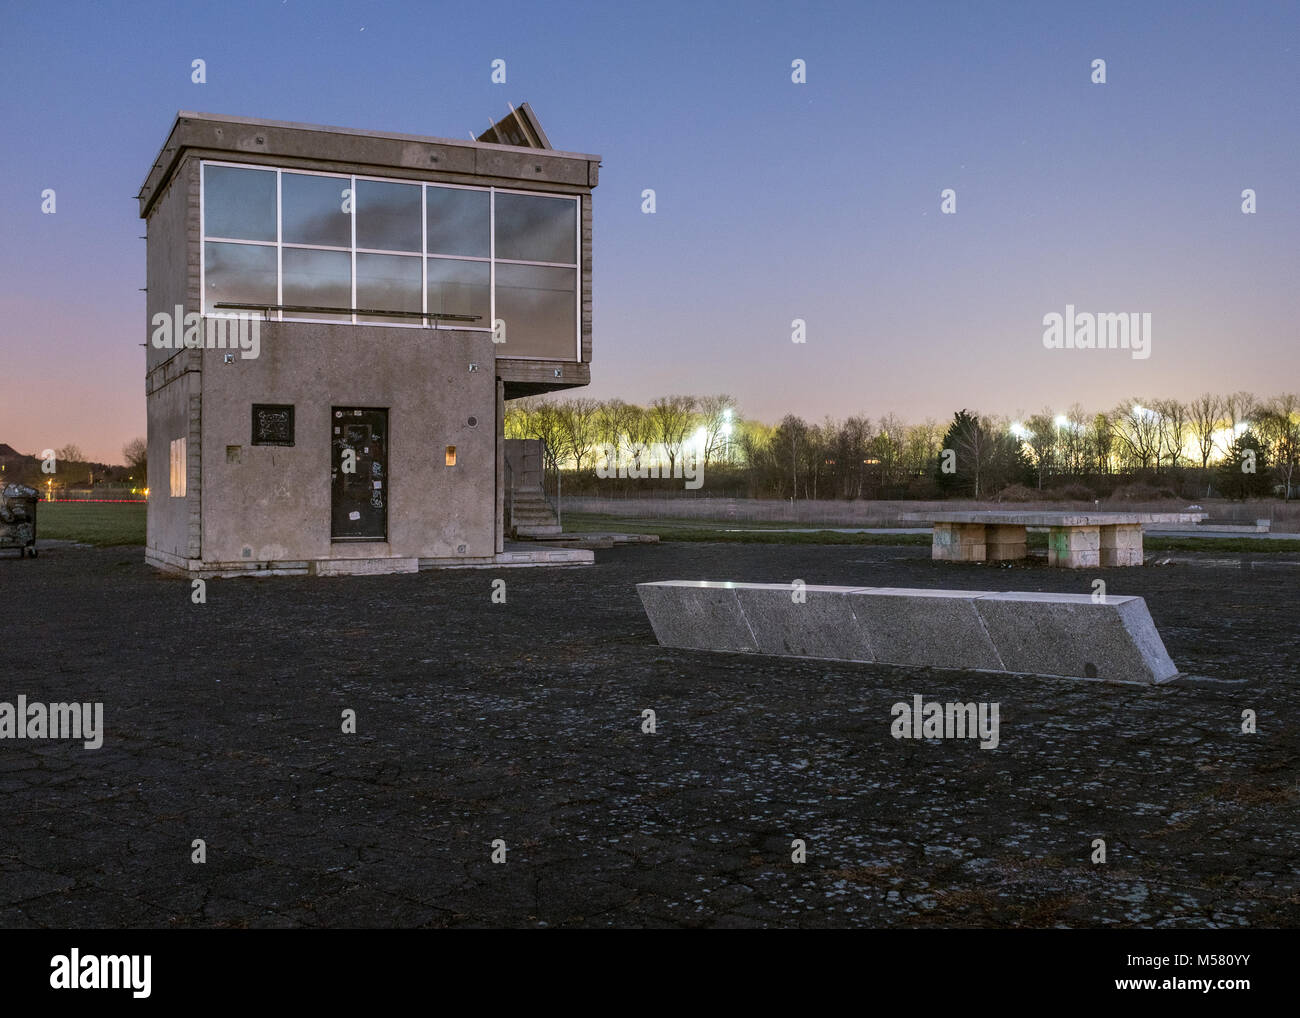 Building of the Skatepark Vogelfreiheit in the Berlin park Tempelhofer Feld. Stock Photo